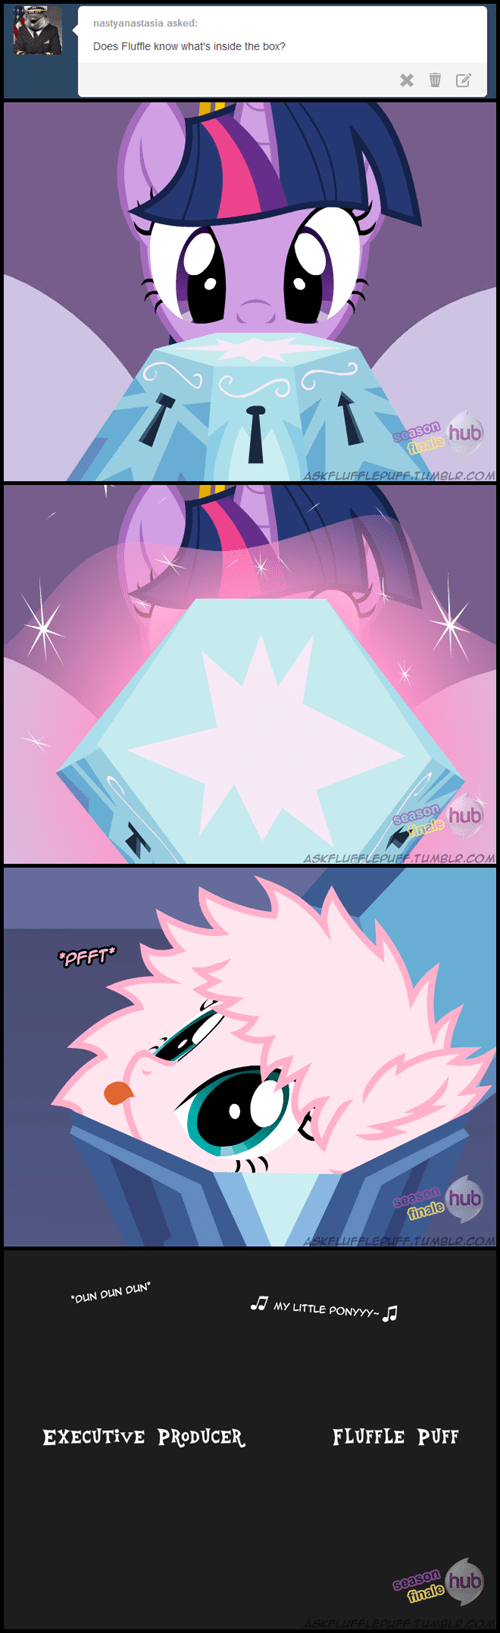 twilight sparkle spoilers the box flufflepuff - 7937953792